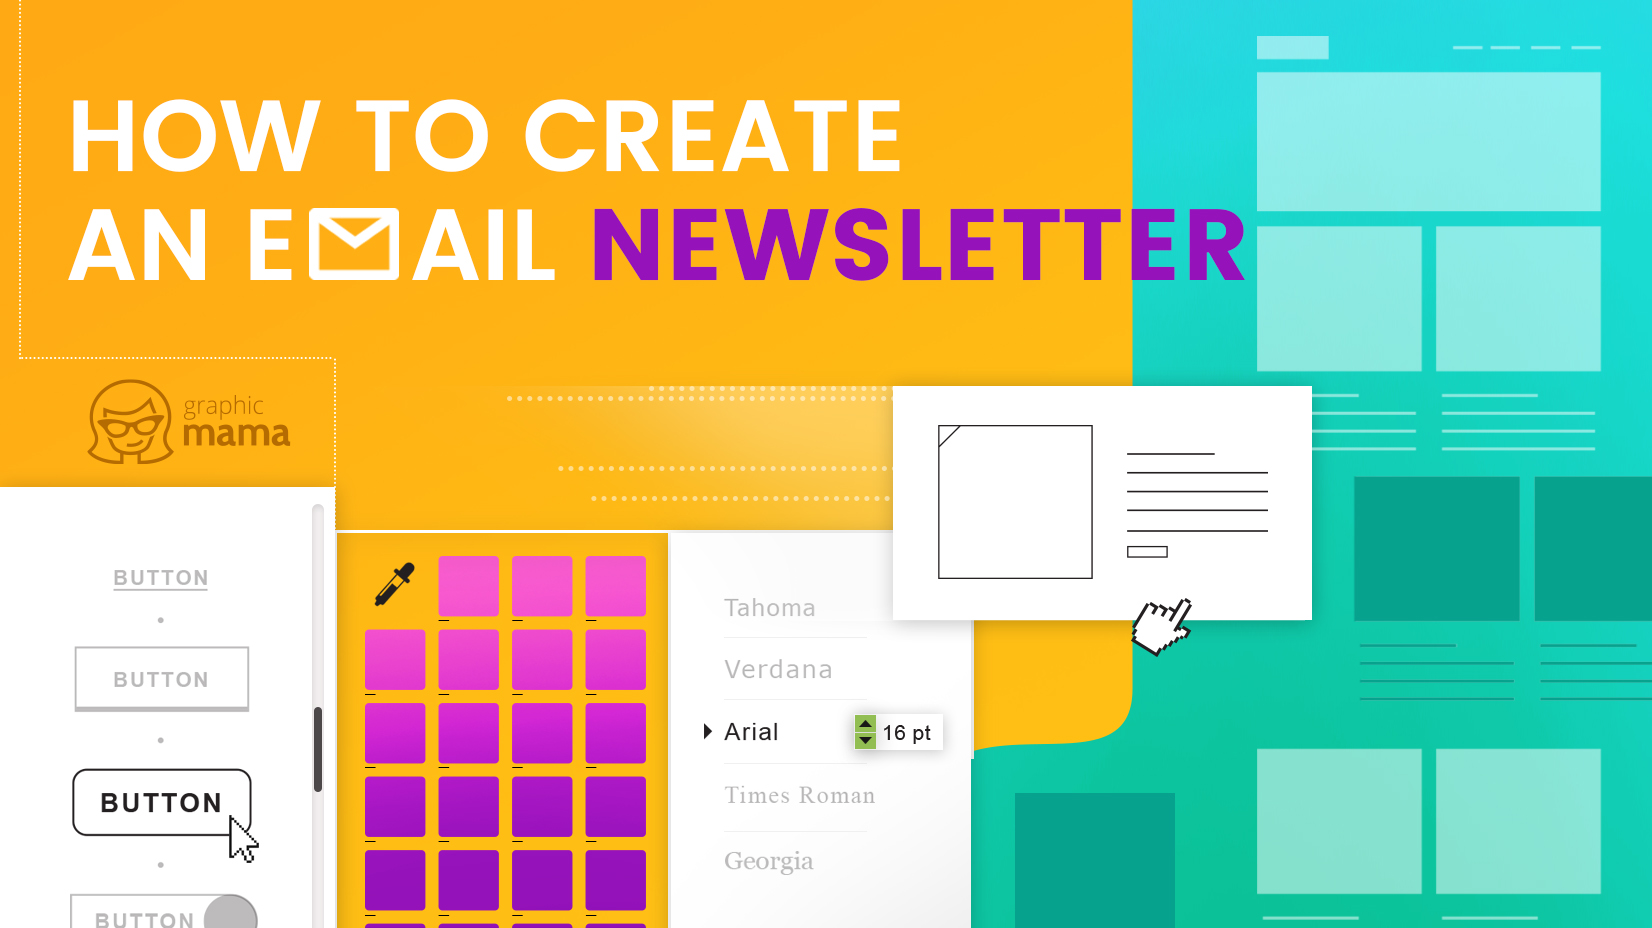 How to Create an Email Newsletter: The Full Guide